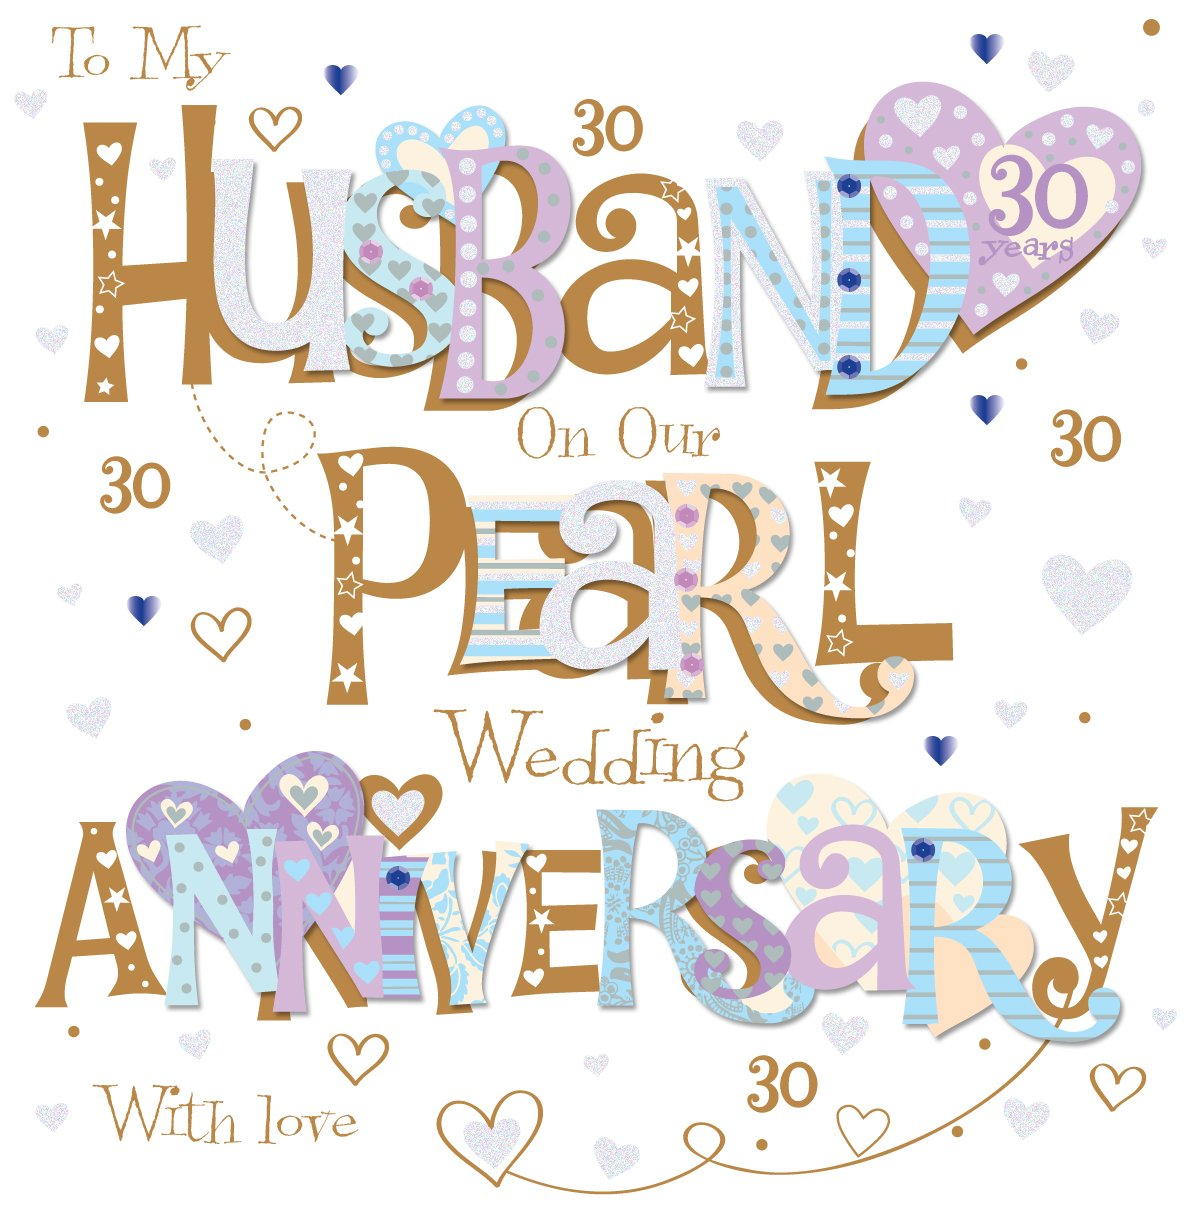 Amazon talking pictures husband pearl 30th wedding anniversary amazon talking pictures husband pearl 30th wedding anniversary greeting card 8 square handmade cards office products m4hsunfo